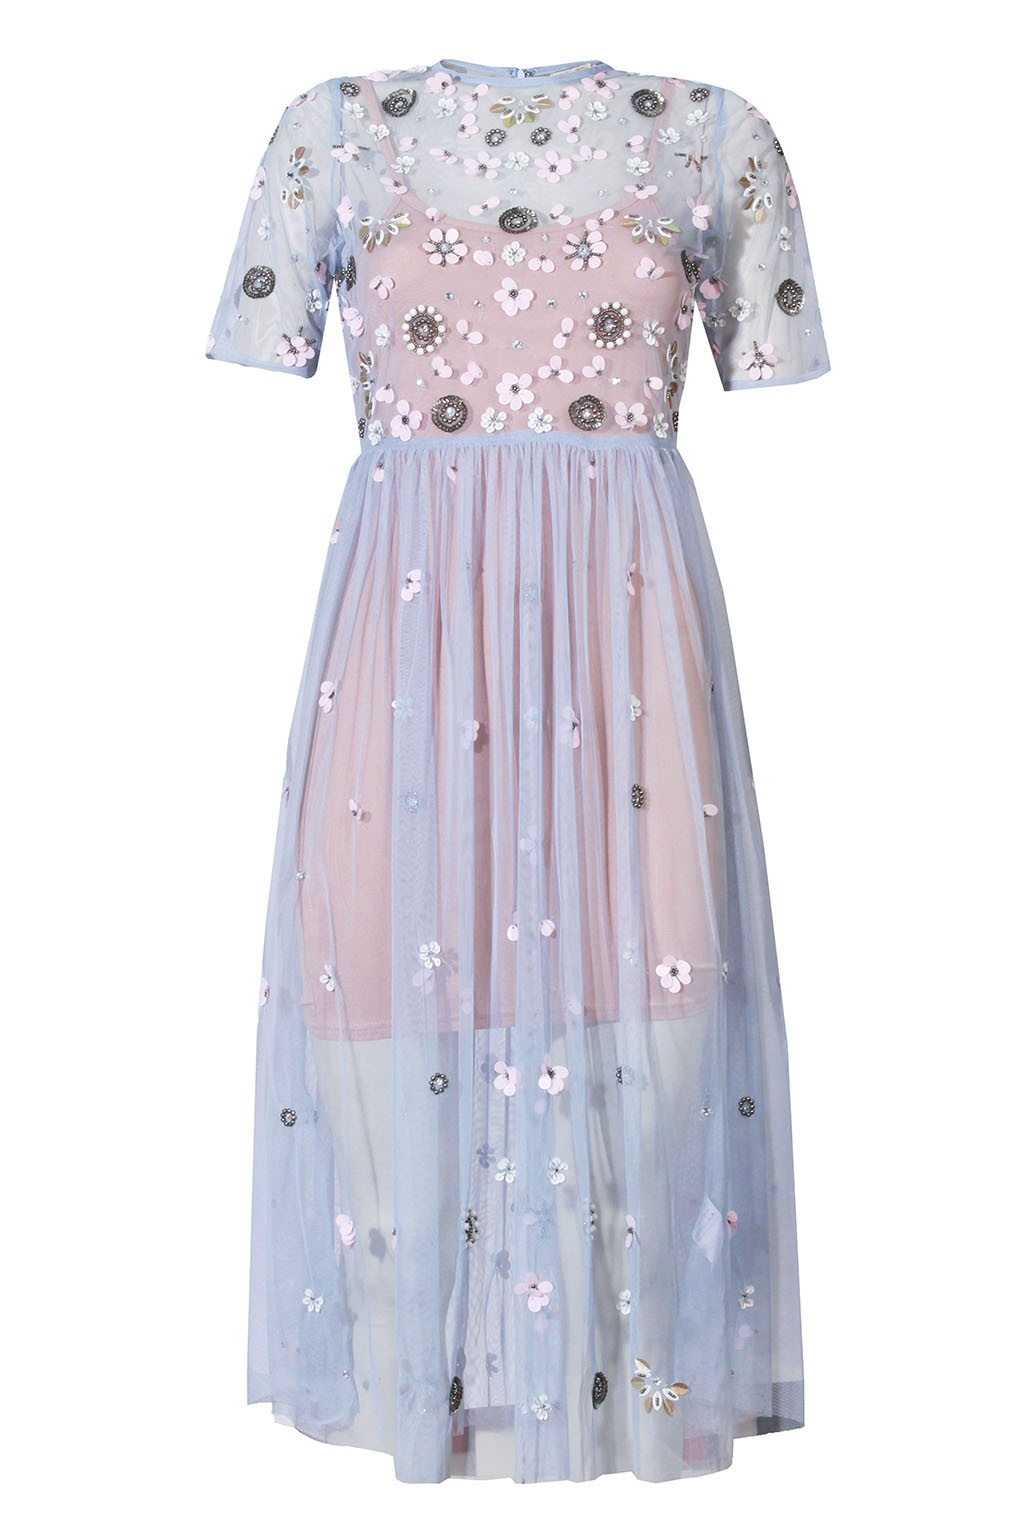 lace beads baby blue sheer dress party dresses